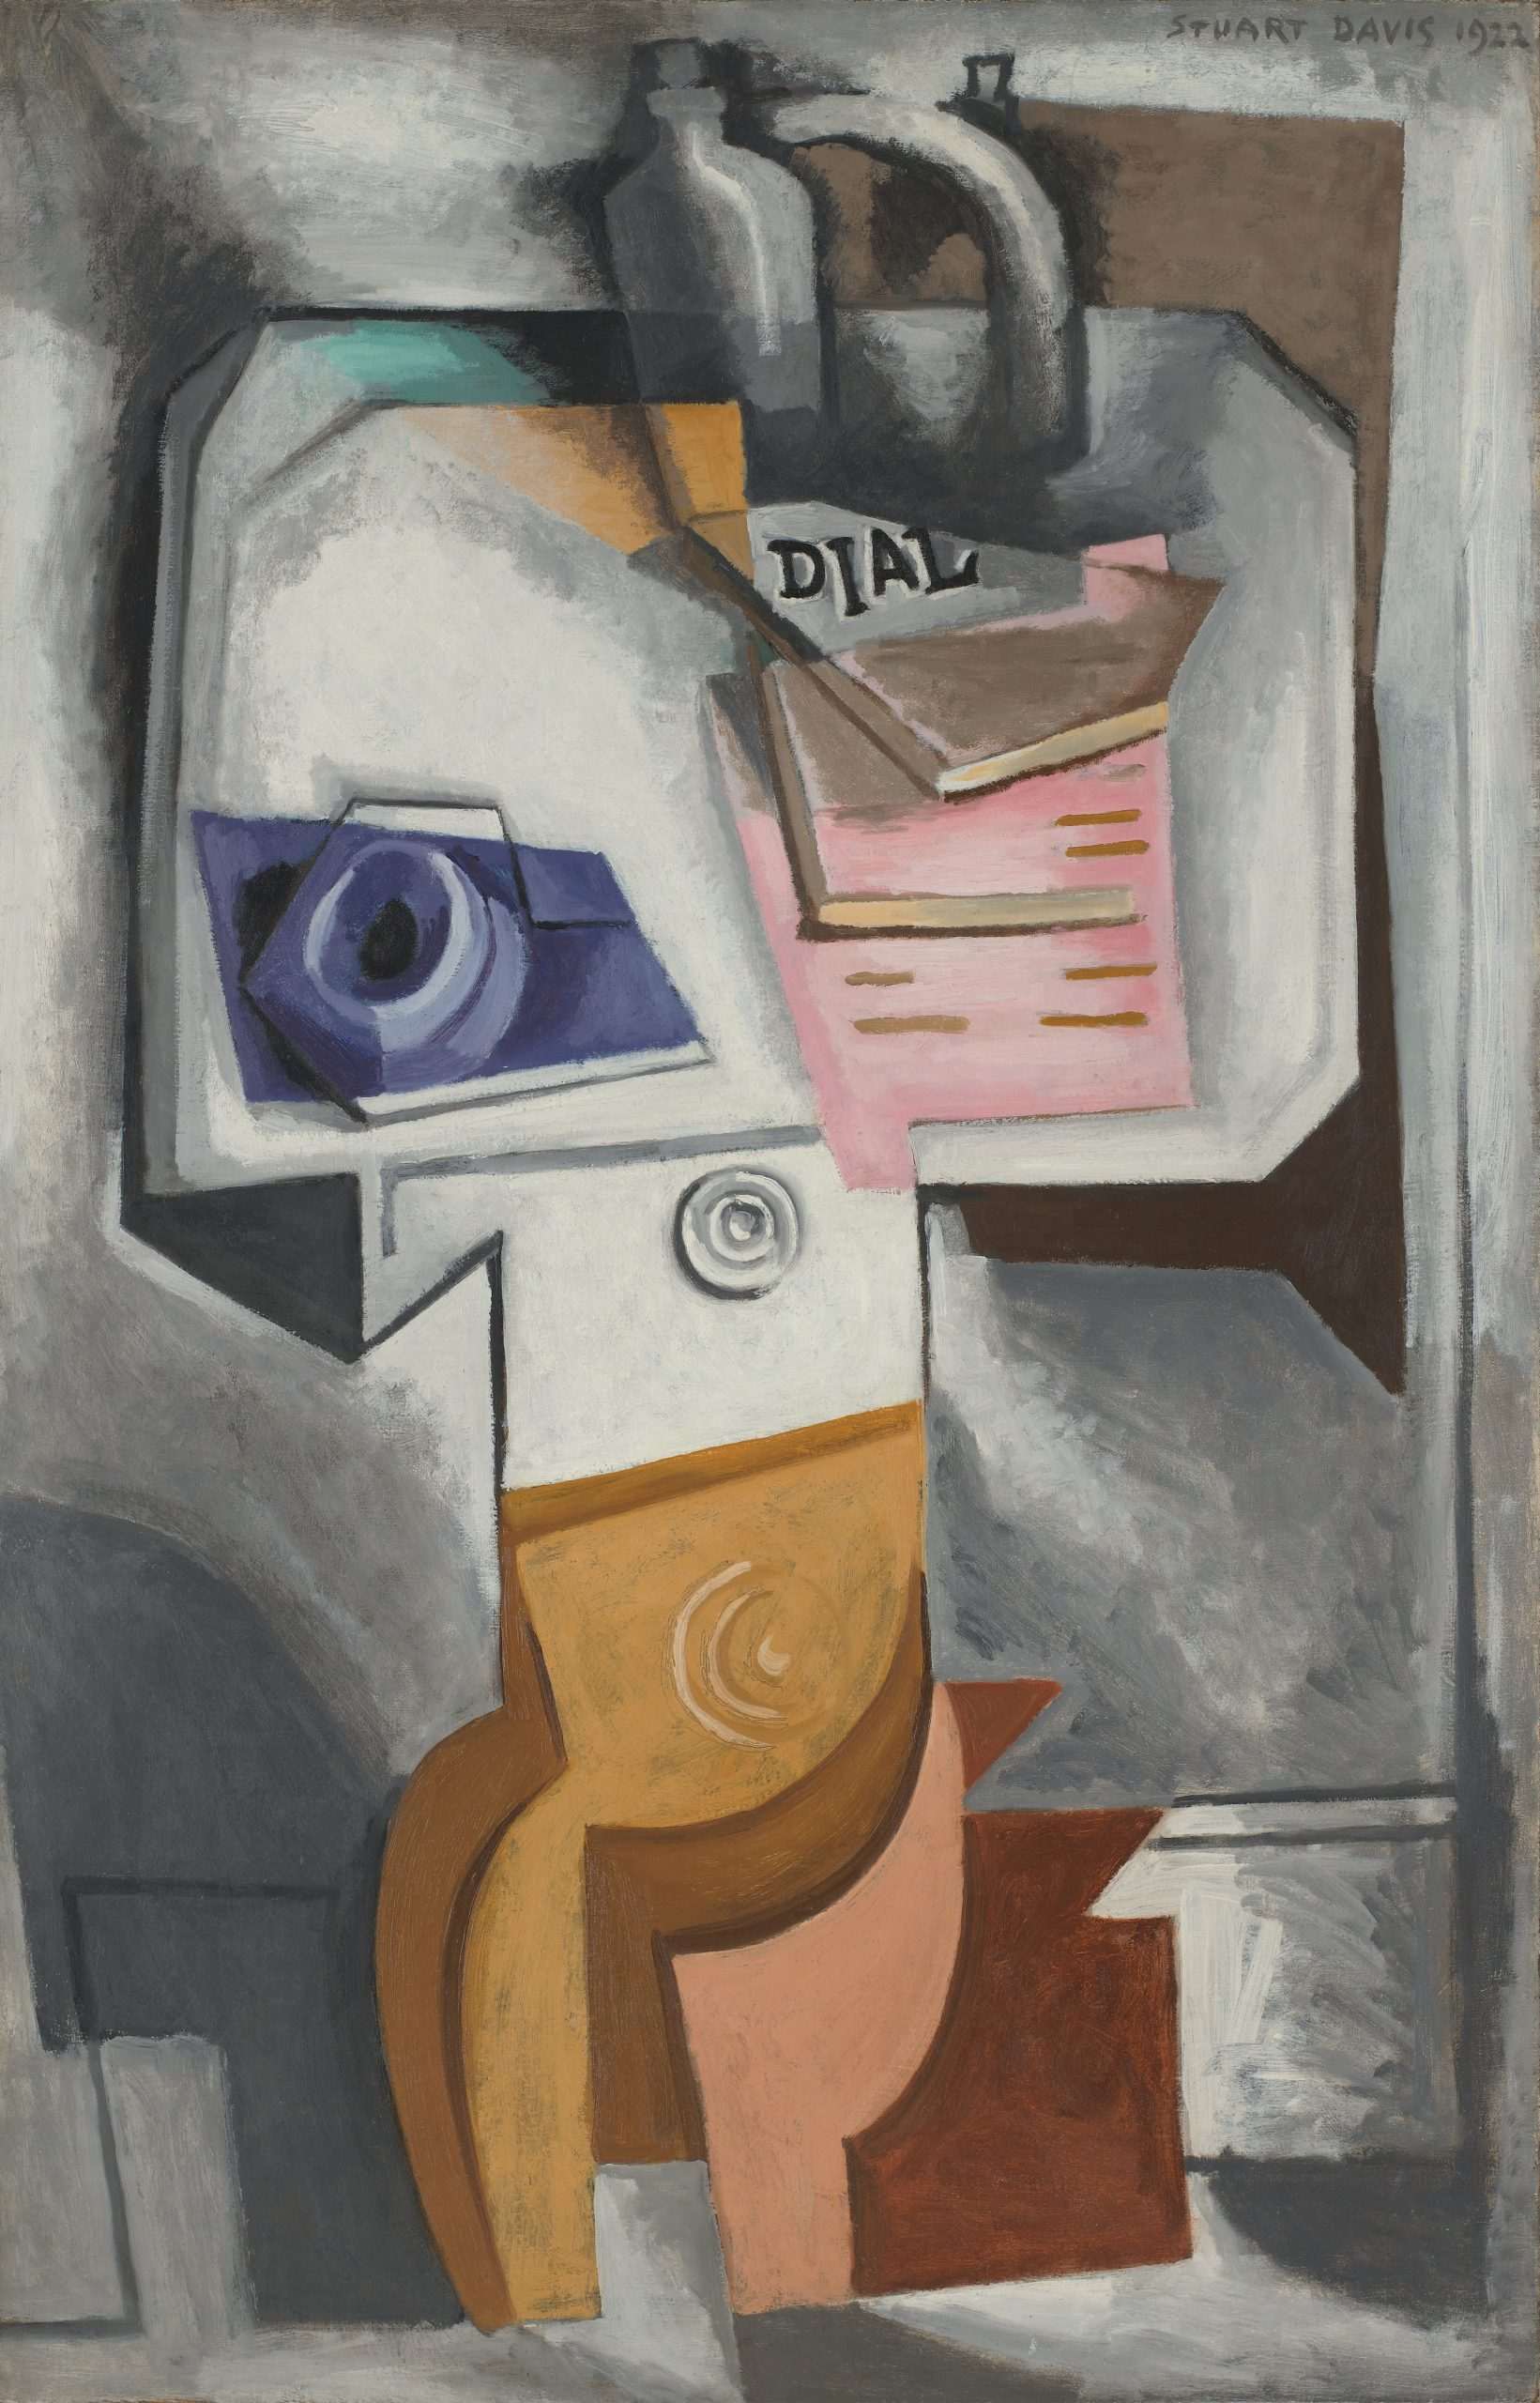 A cubist still life featuring a cup and saucer, stack of magazines, and jug on an upturned table top.